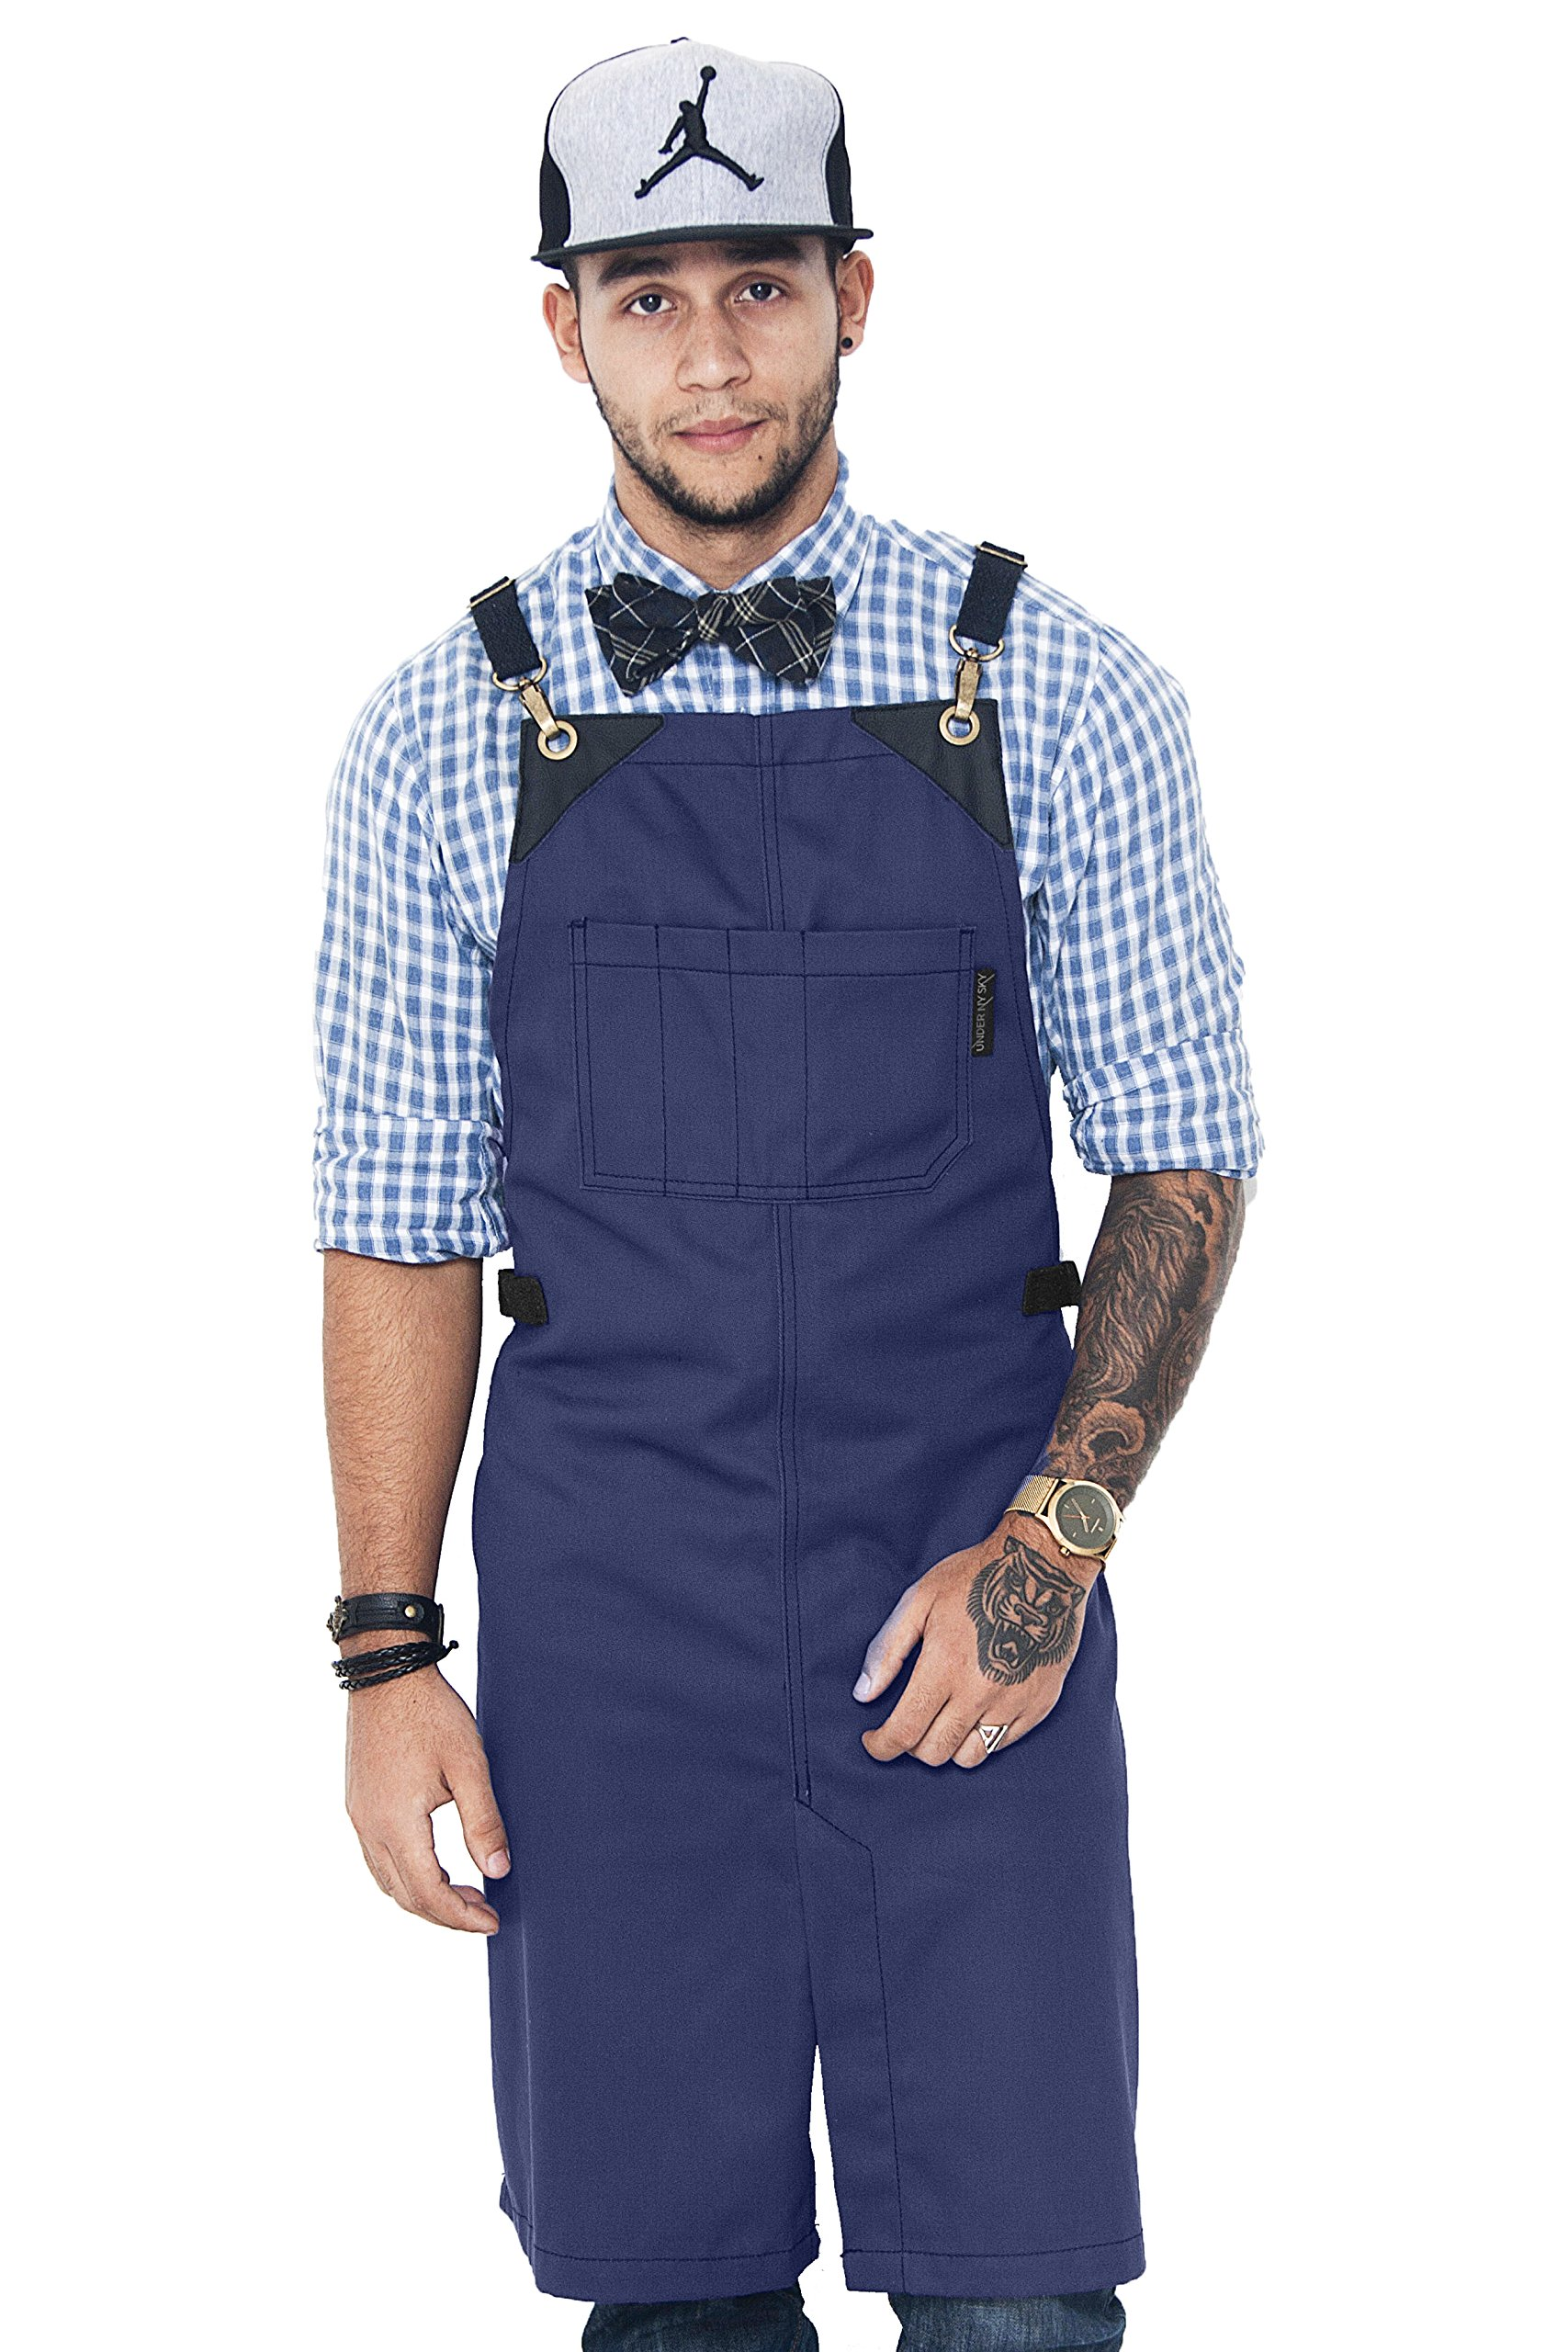 Under NY Sky Barber Indigo Blue Apron – Cross-Back with Durable Waterproof and Oil Proof Twill, Leather Reinforcement and Split-Leg – Adjustable, Men and Women, Pro Tattoo, Stylist, Bartender Aprons